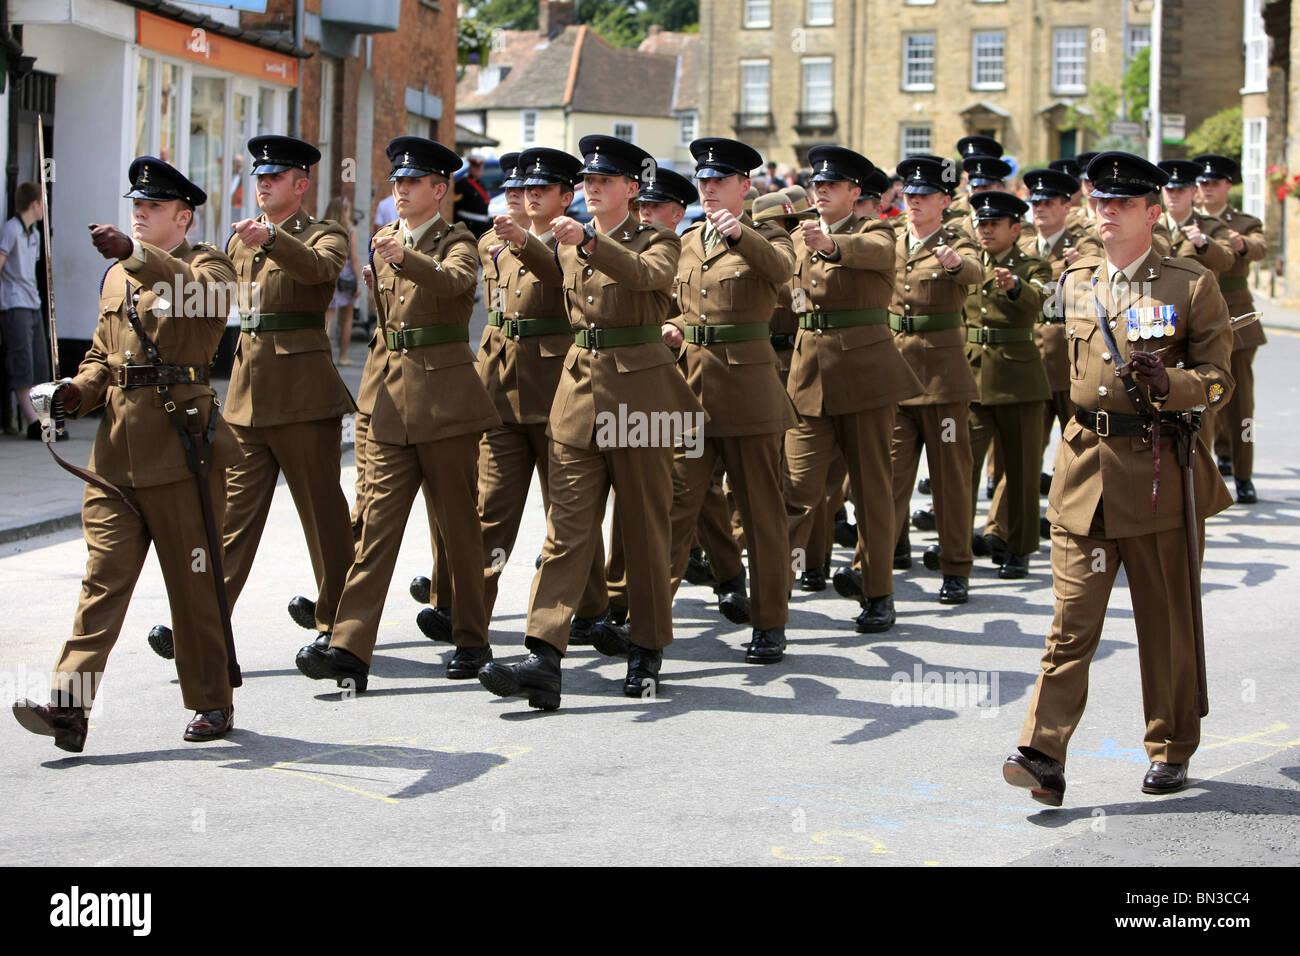 UK Armed Forces Day Parade British Army Soldiers from the Signals Regiment Marching through Sherborne Dorset - Stock Image